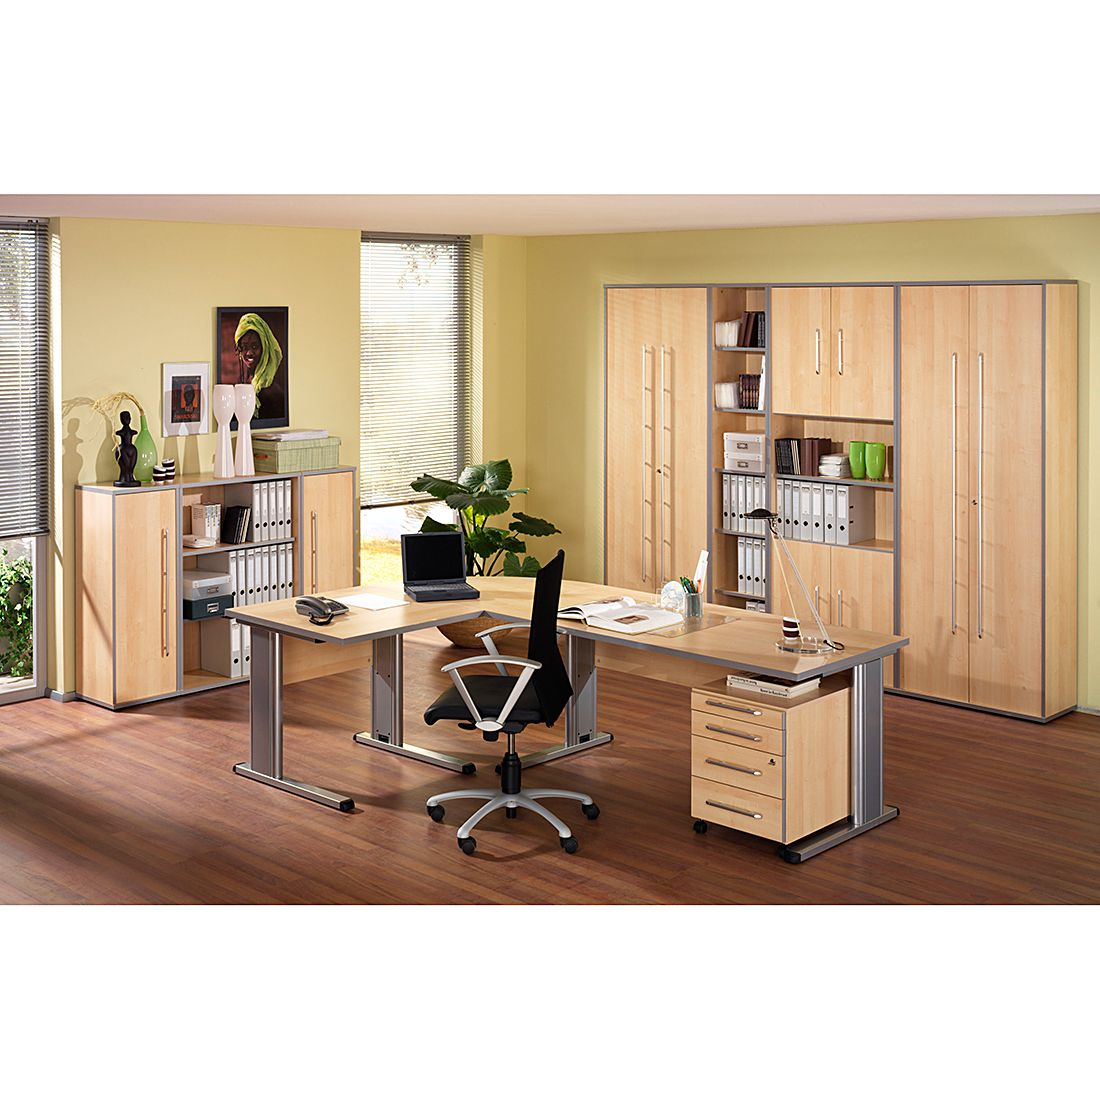 Home 24 - Mobilier de bureau kirk extra - imitation érable, wellemöbel